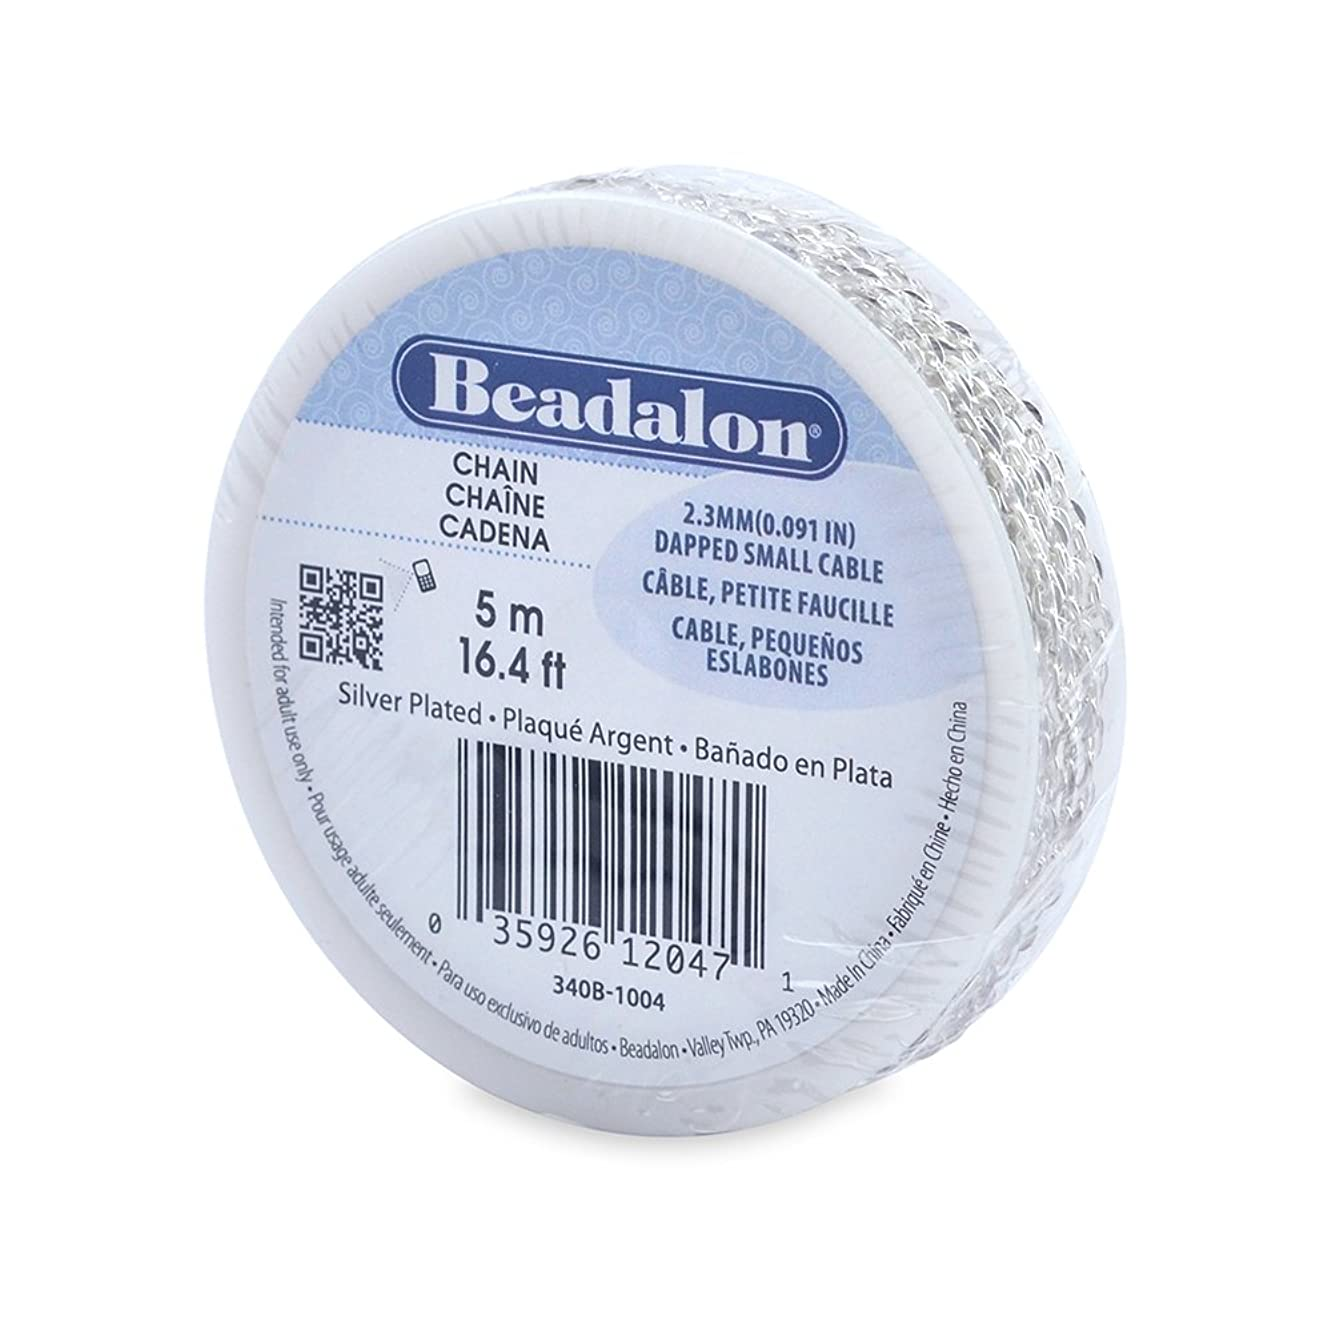 Beadalon 2.3mm Jewelry Making Chain, 5m, Dapped Small Cable, Silver Plated